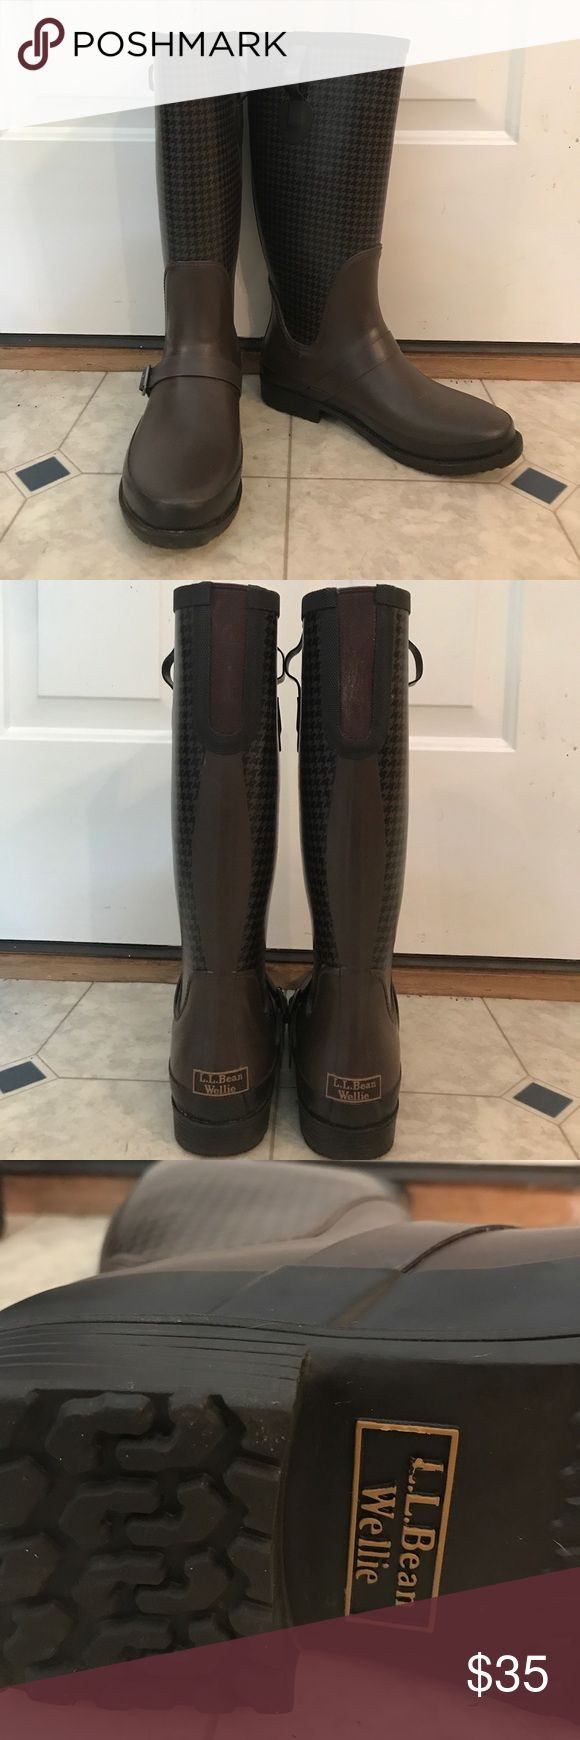 L.L. Bean Wellie Women's Medium/Size 11 Rain-boots L.L. Bean Women's all rubber Rain boots. Size 11. Medium. Brown with buckle on front. Only worn once. Very sturdy, and will last a very long time. L.L. Bean Shoes Winter & Rain Boots